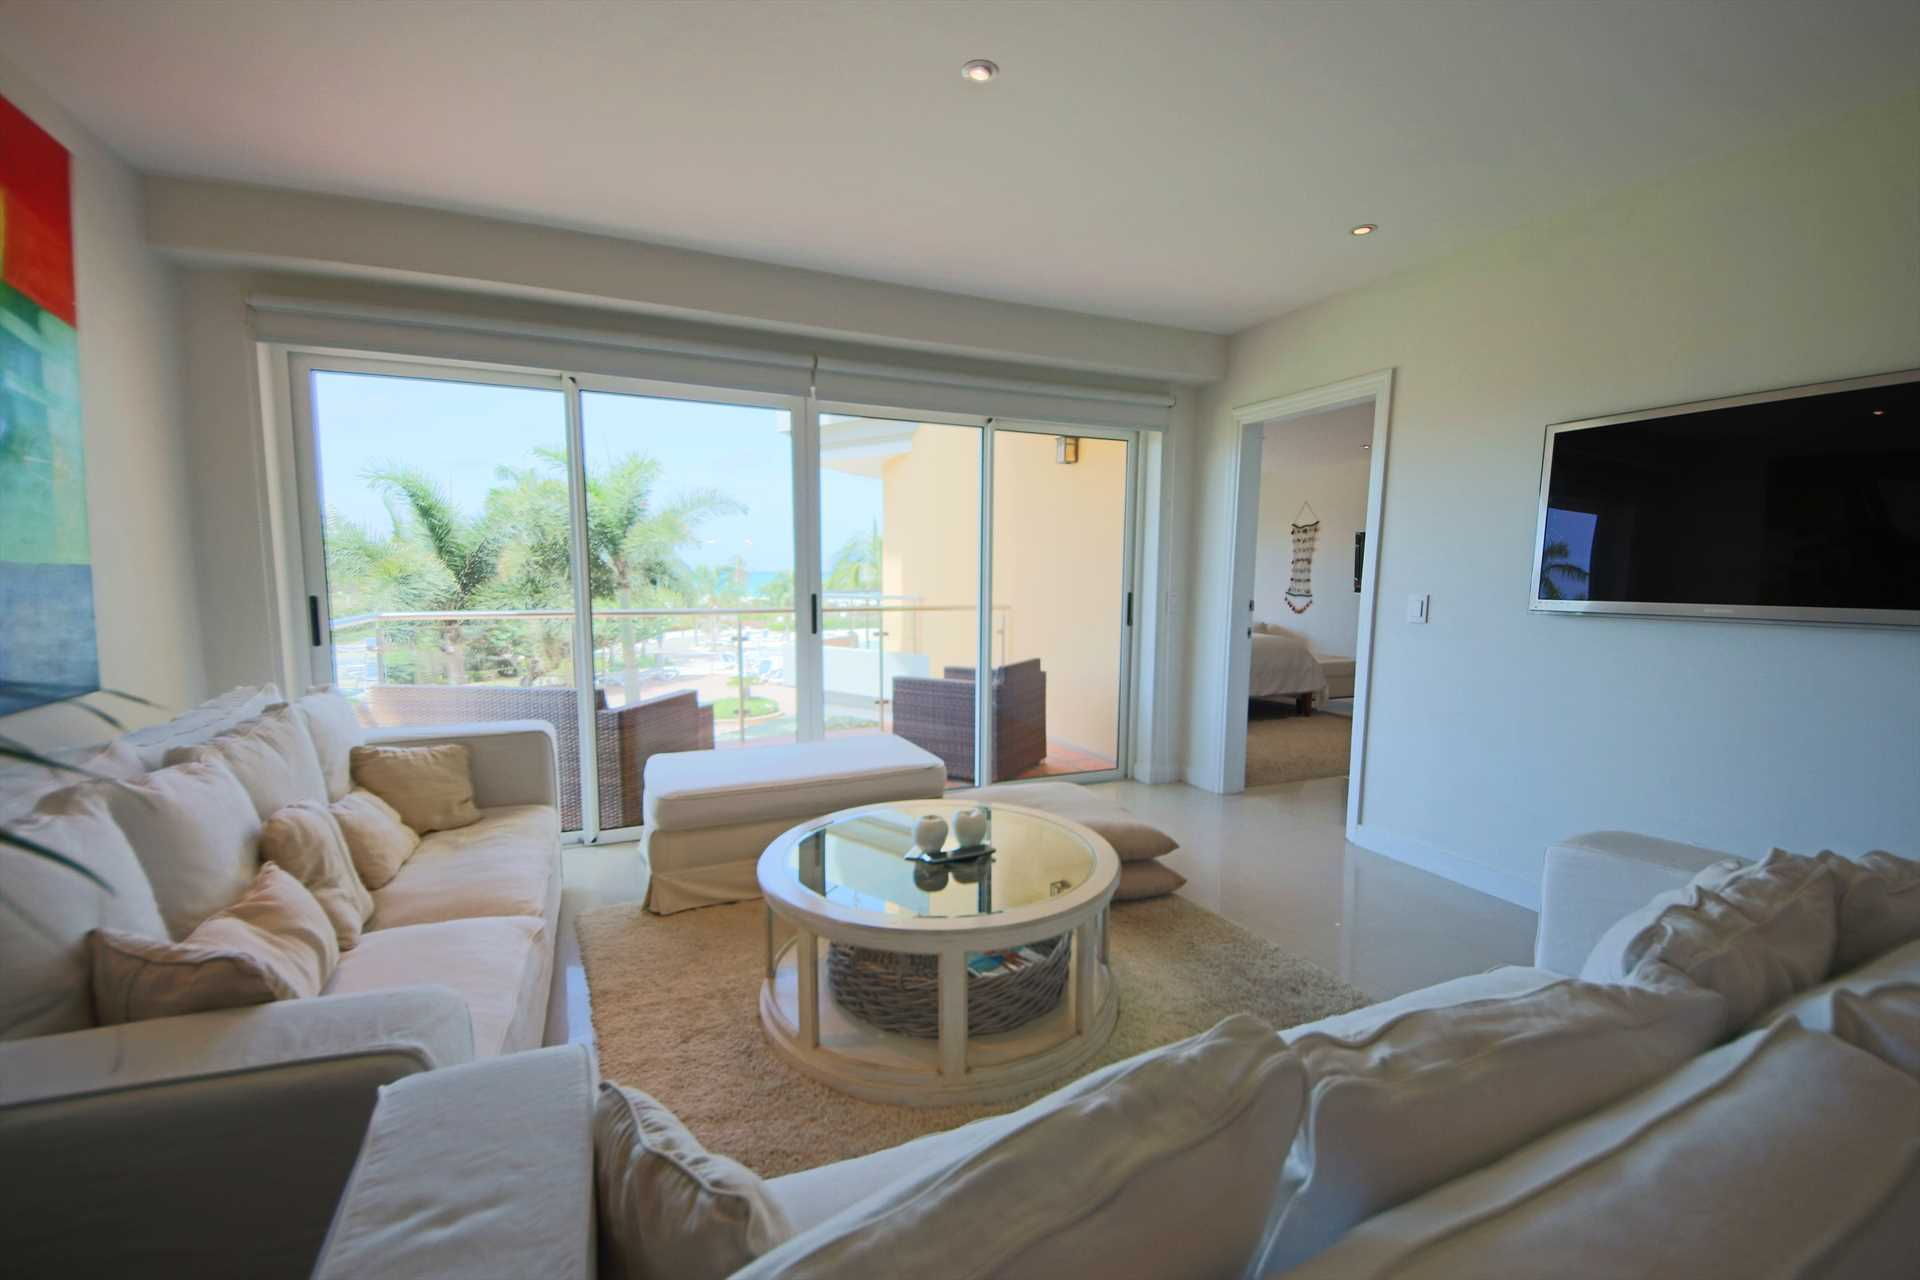 Living area with 2 sofas, HDTV and access to balcony with view